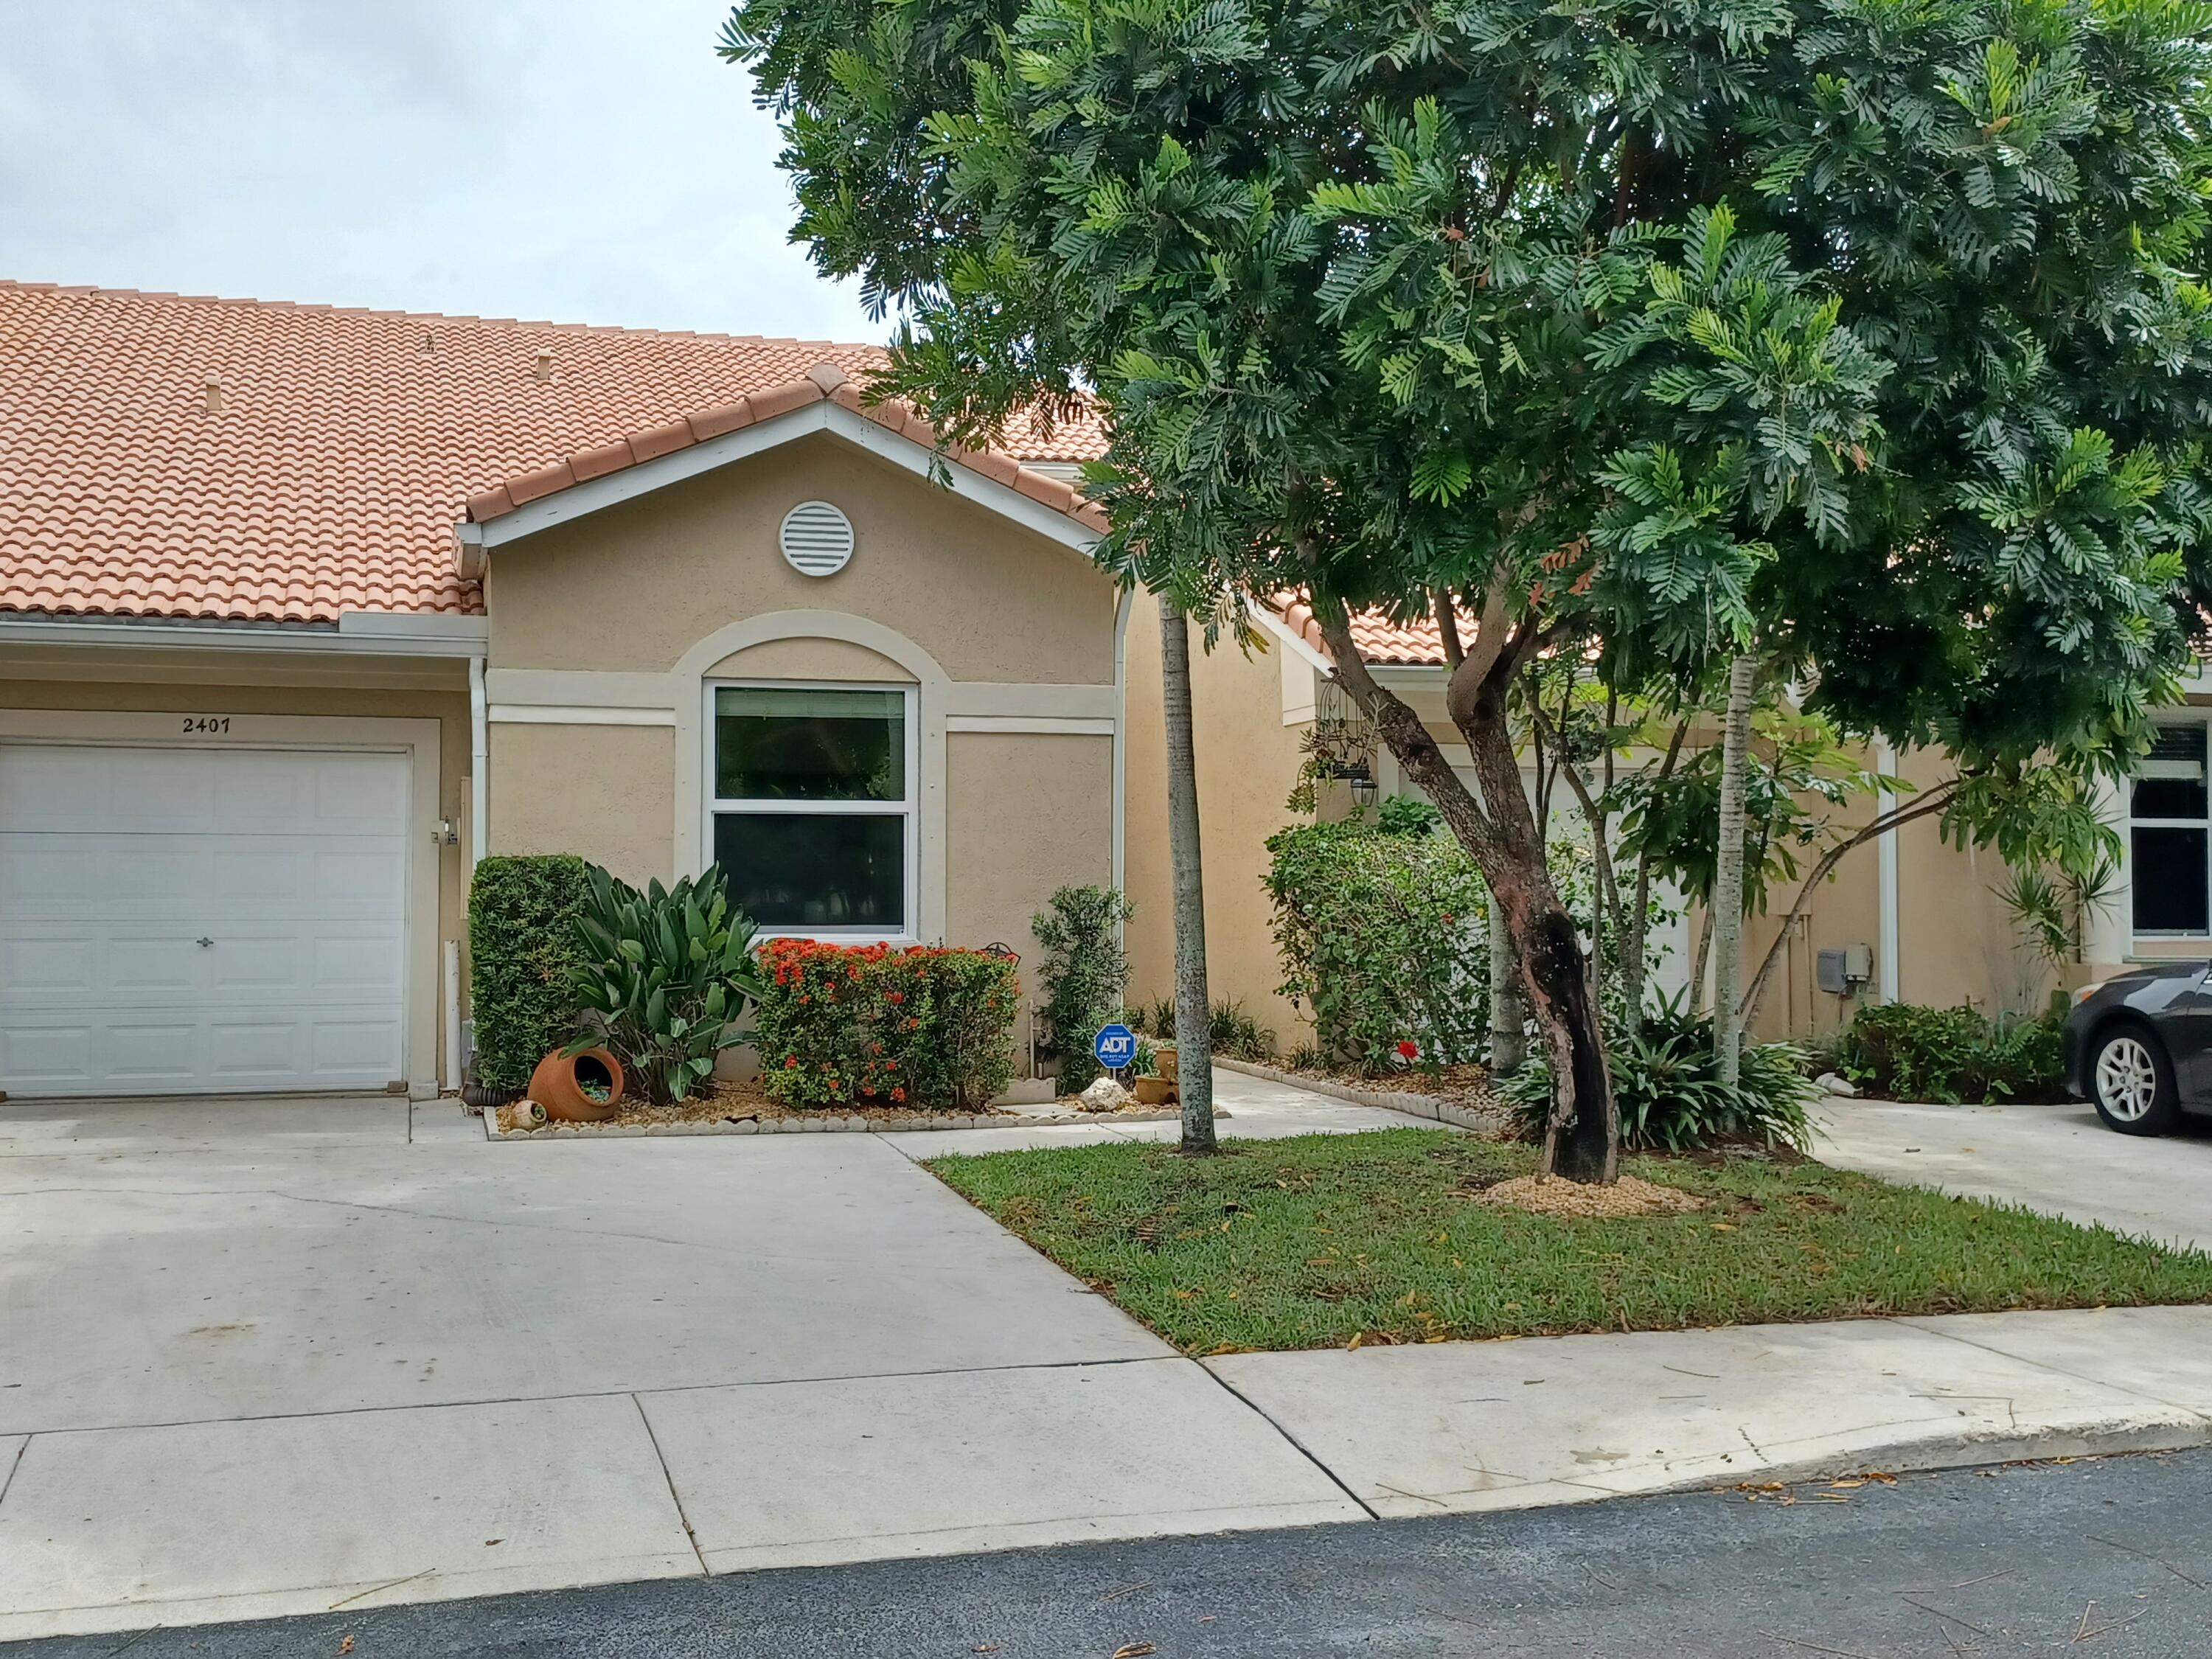 2407 N Coral Trace Circle  For Sale 10725350, FL